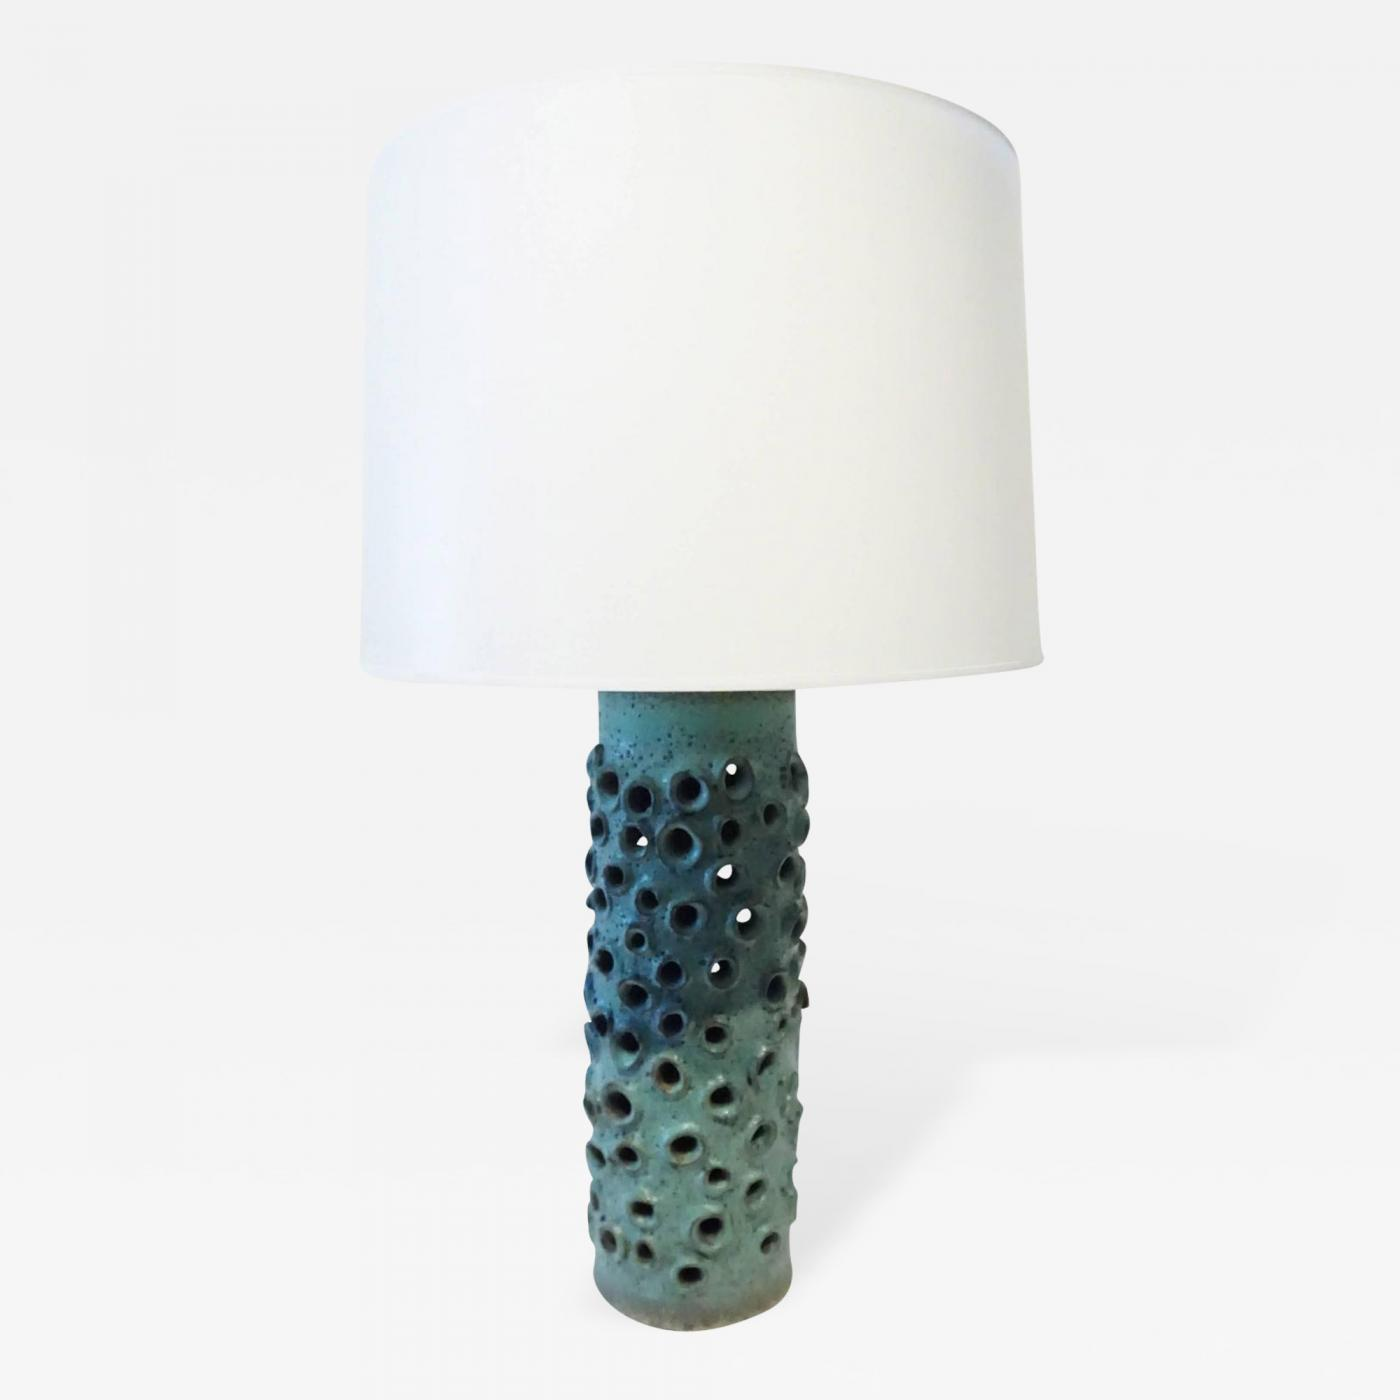 Warner walcott turquoise table lamp by warner walcott listings furniture lighting table lamps geotapseo Images